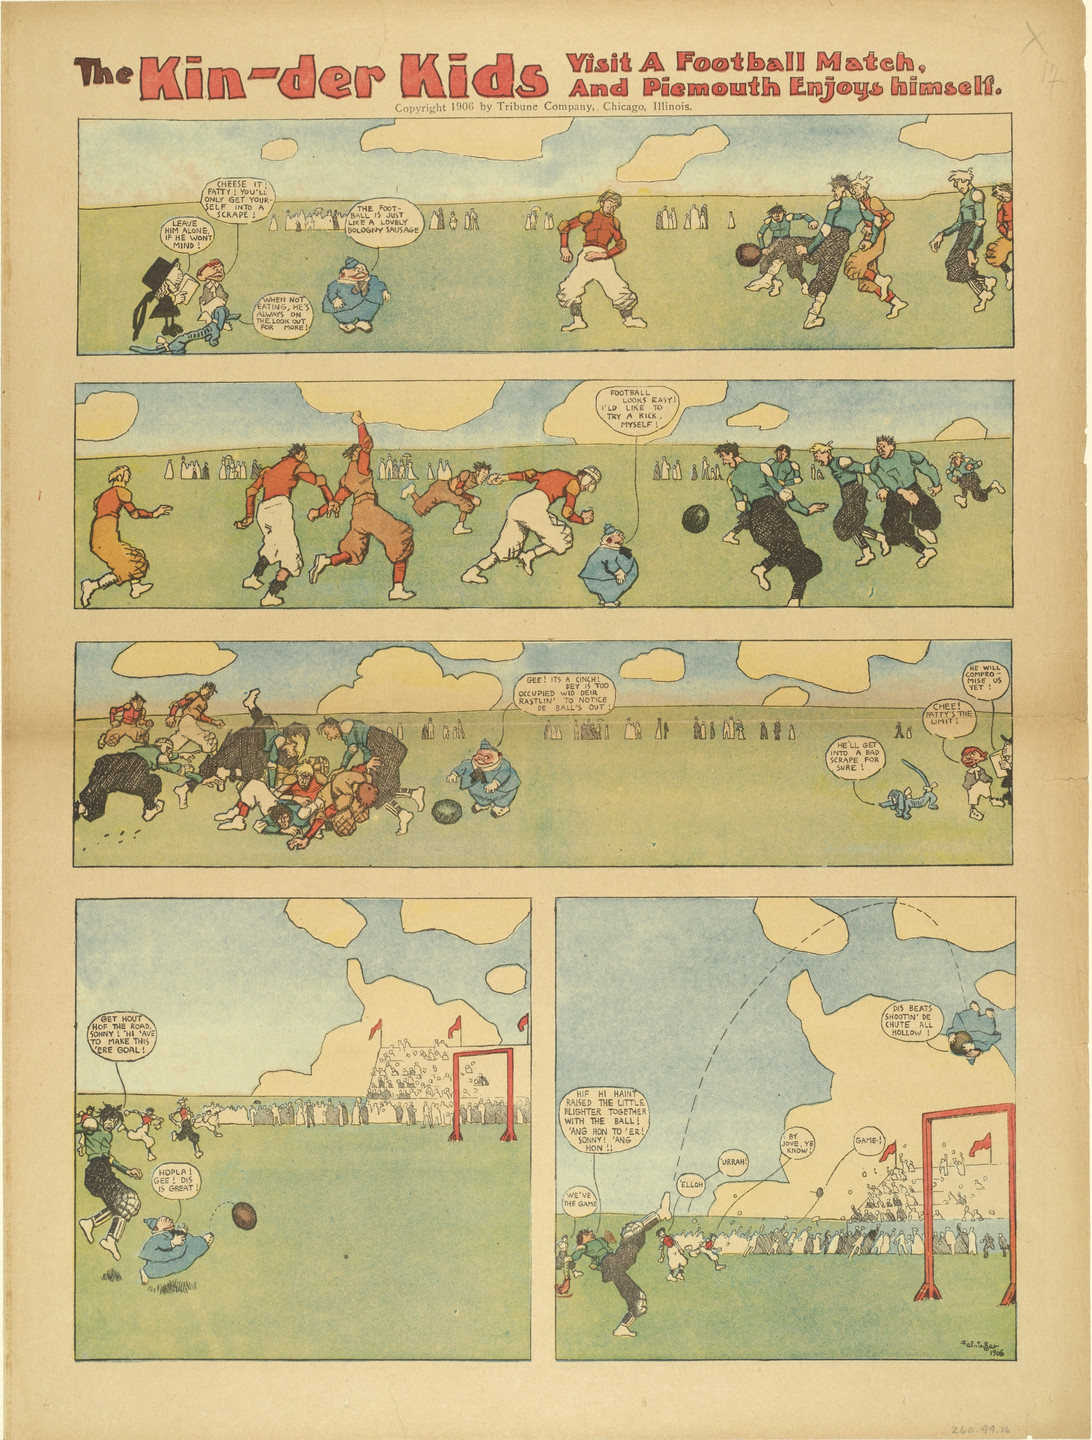 Lyonel Feininger. The Kin-der-Kids Visit a Football Match and Piemouth Enjoys Himself from The Chicago Sunday Tribune. (August 19) 1906